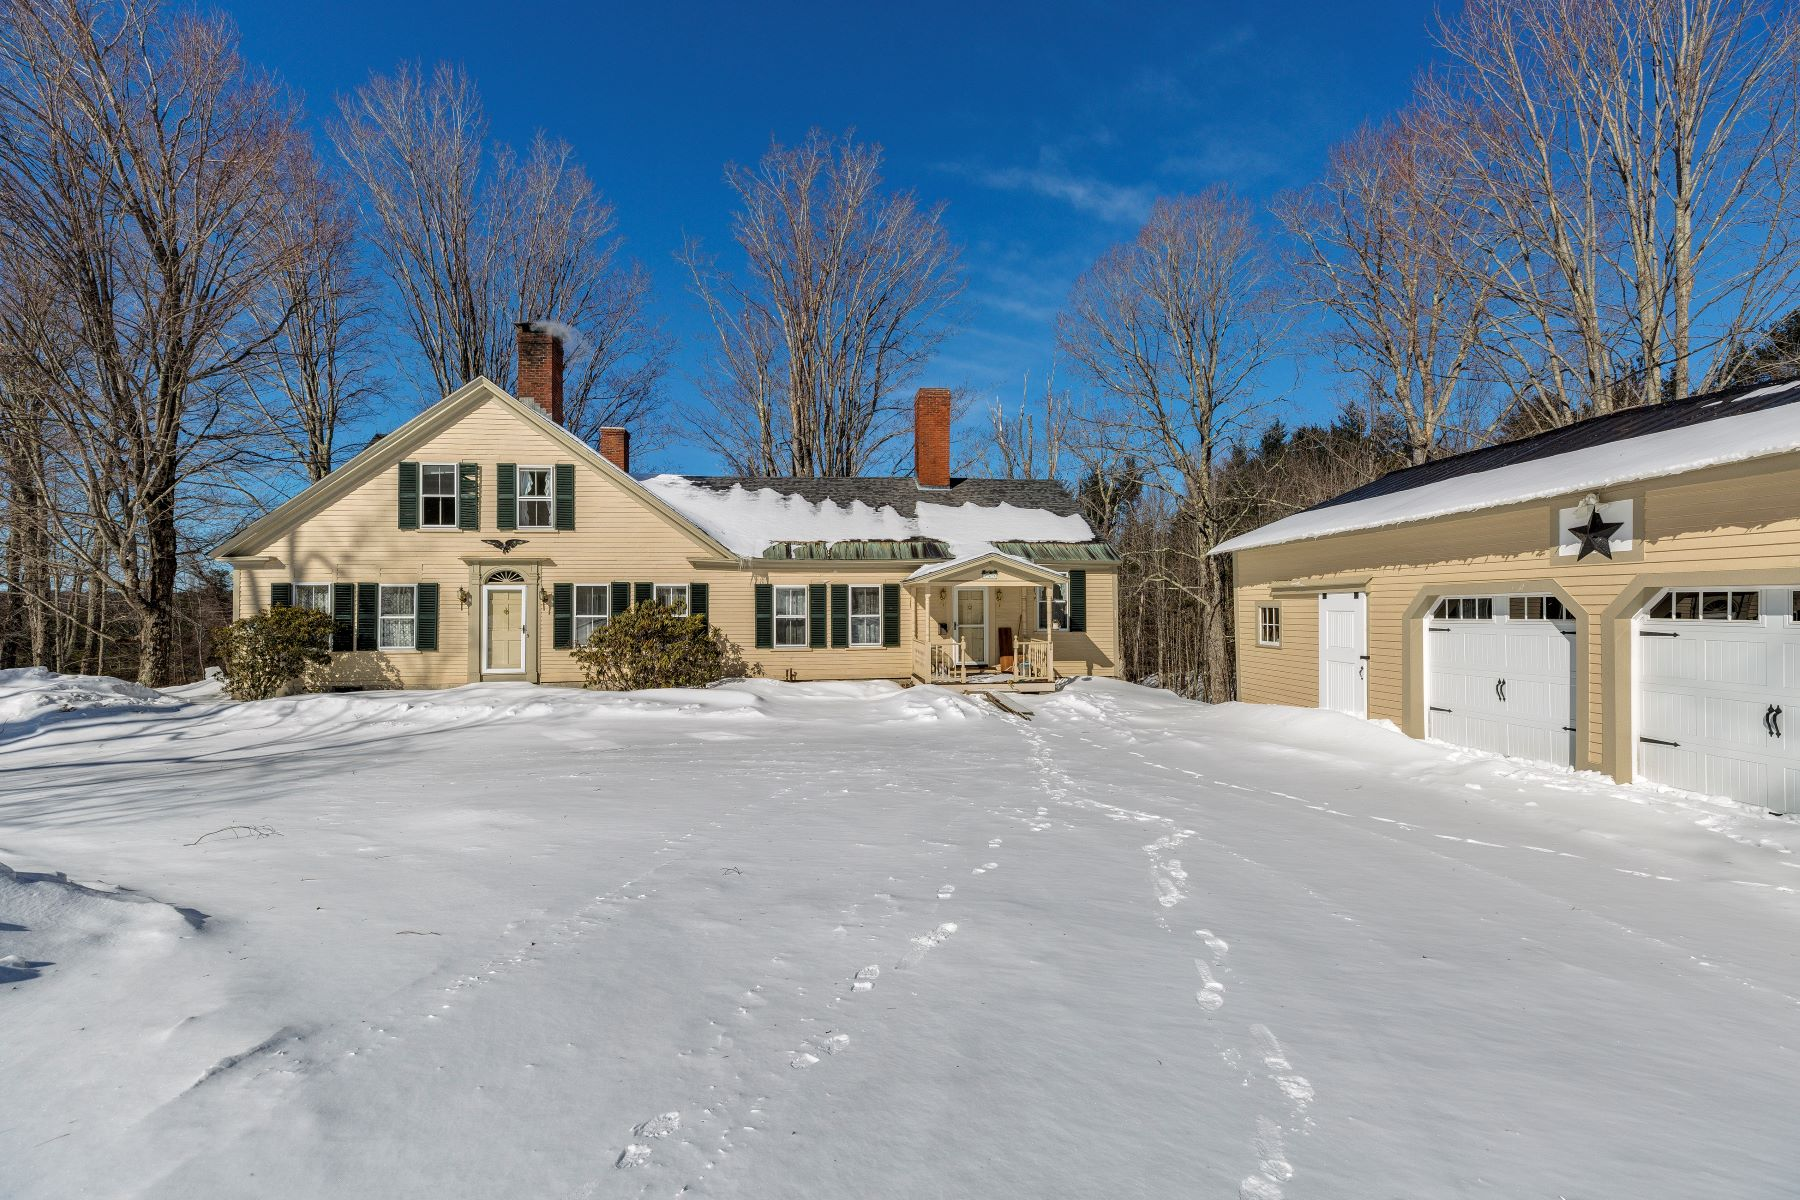 Single Family Home for Sale at 189 Chellis Road, Plainfield 189 Chellis Rd Plainfield, New Hampshire 03770 United States